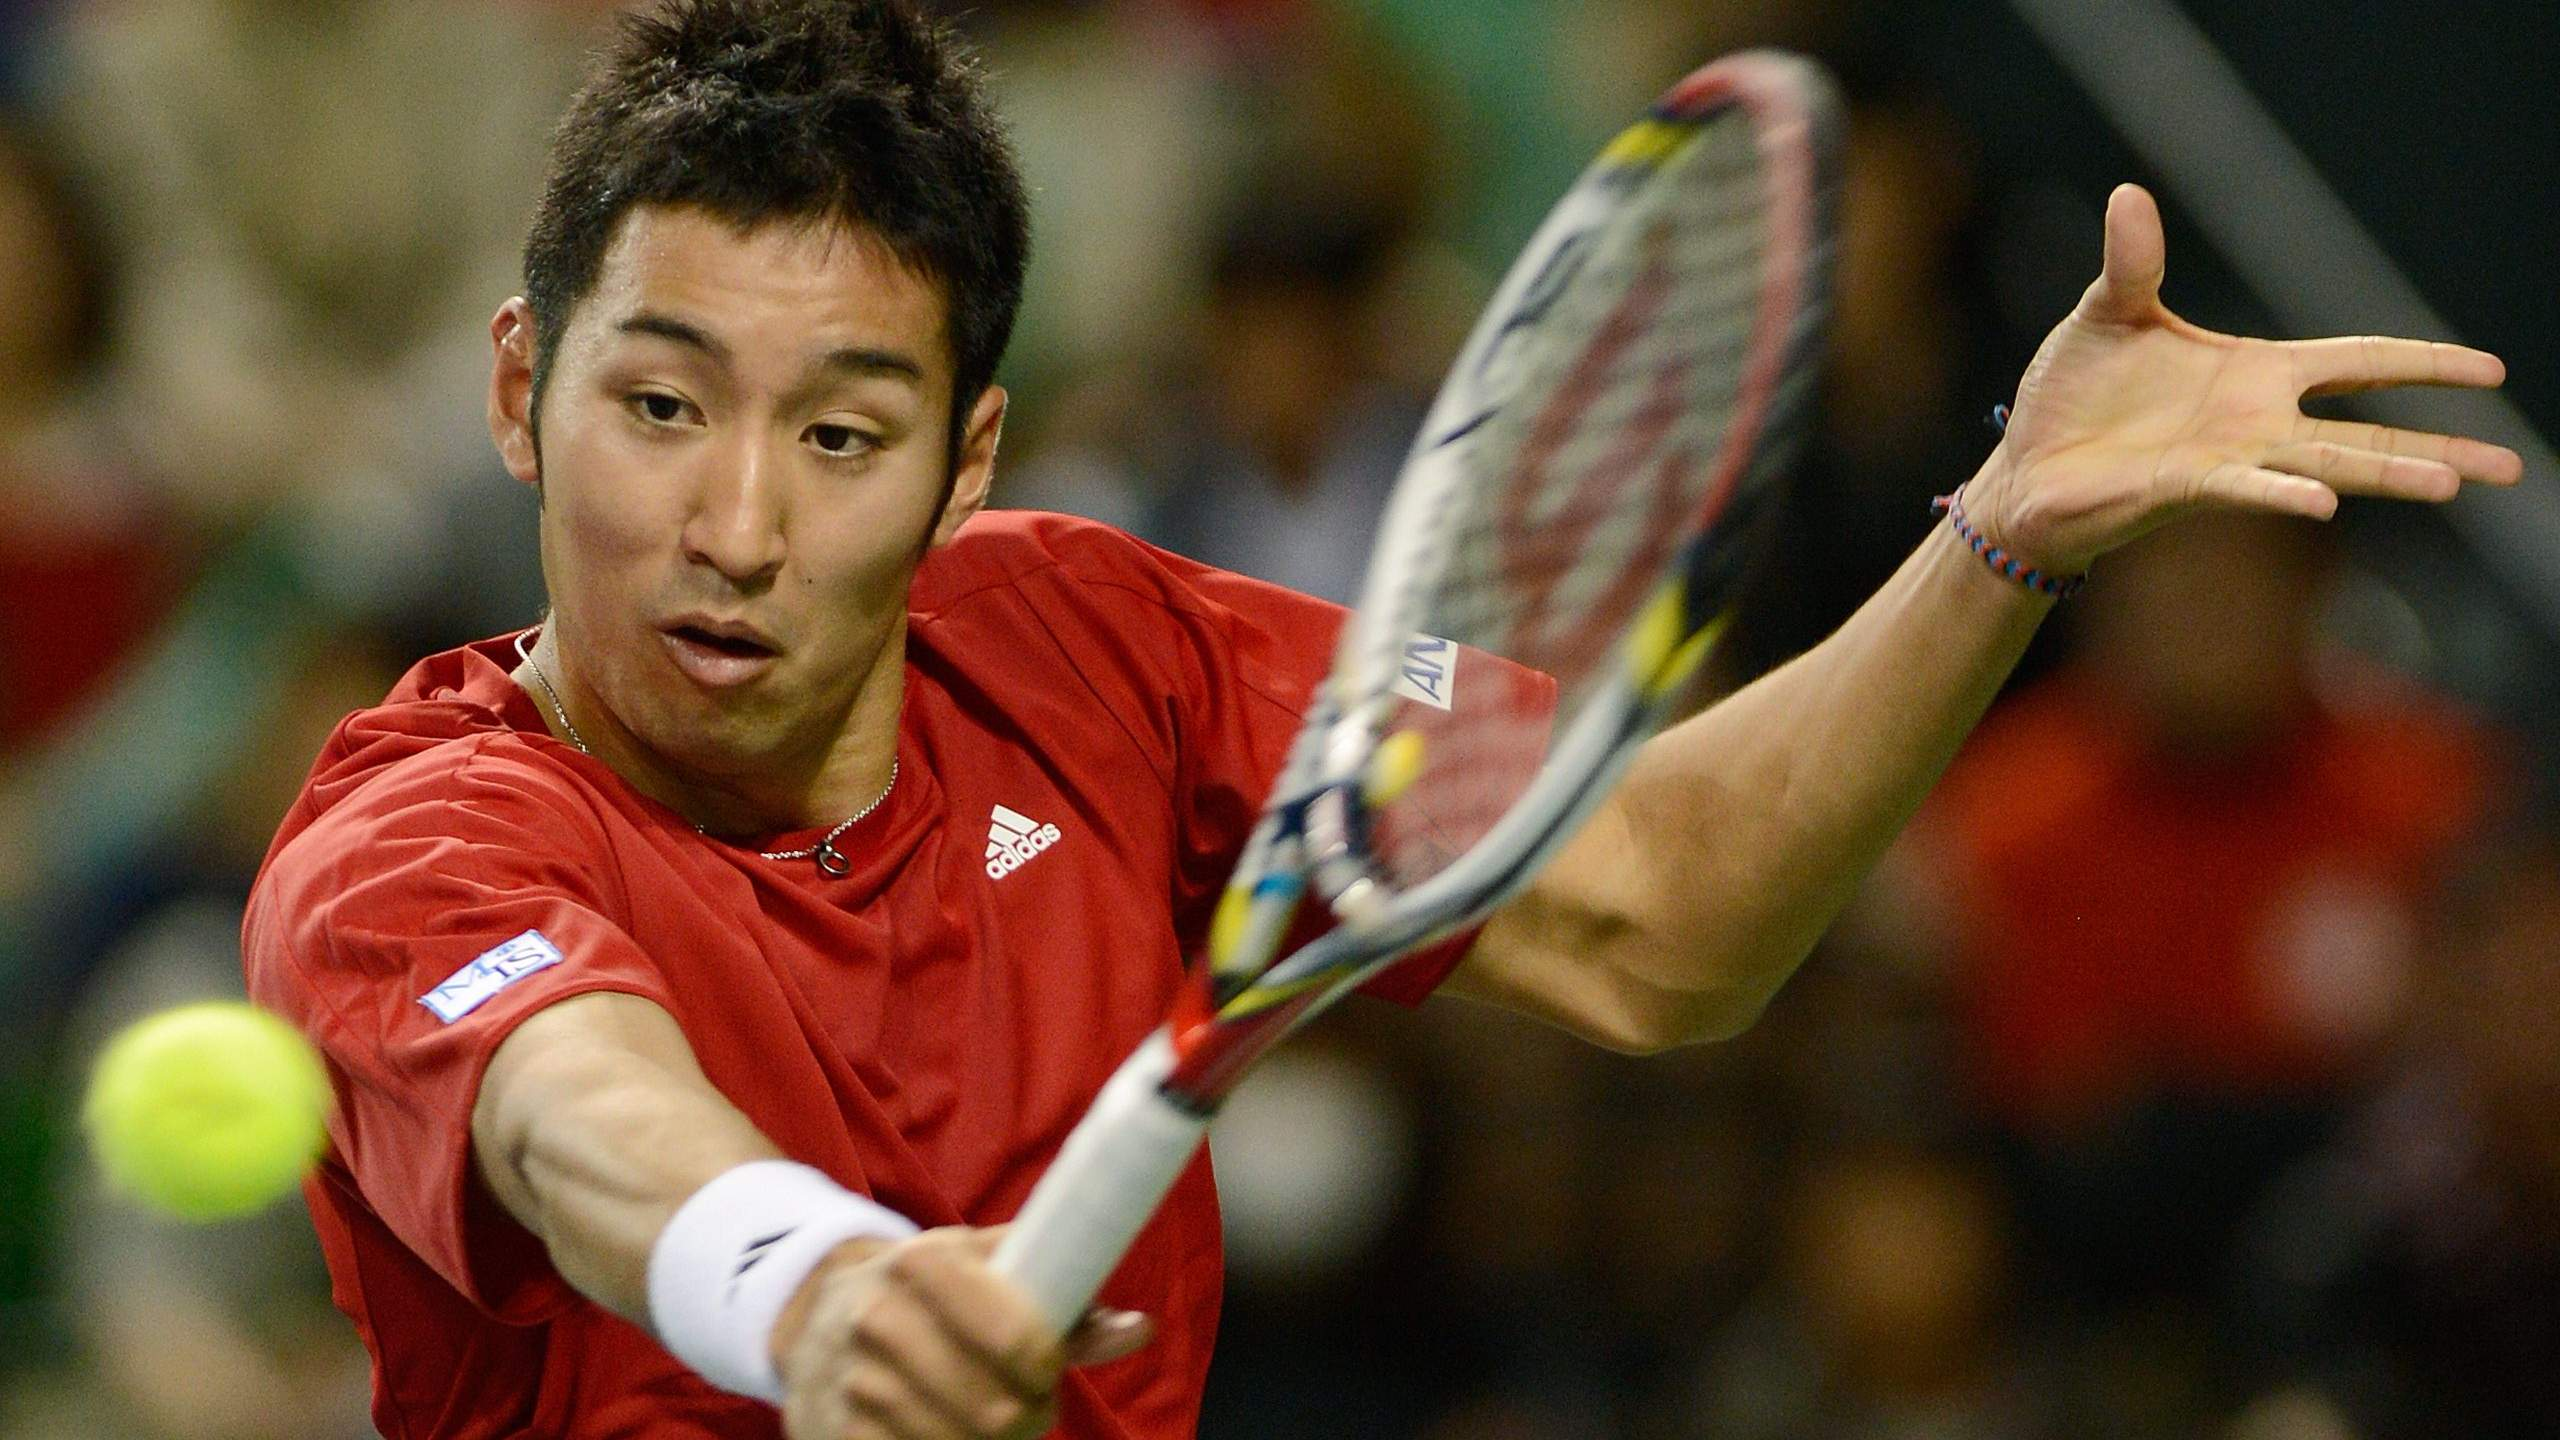 Debut delight: Yasutaka Uchiyama plays a shot during his singles match in Japan's 5-0 Davis Cup win over Indonesia on Sunday.  | AFP-JIJI